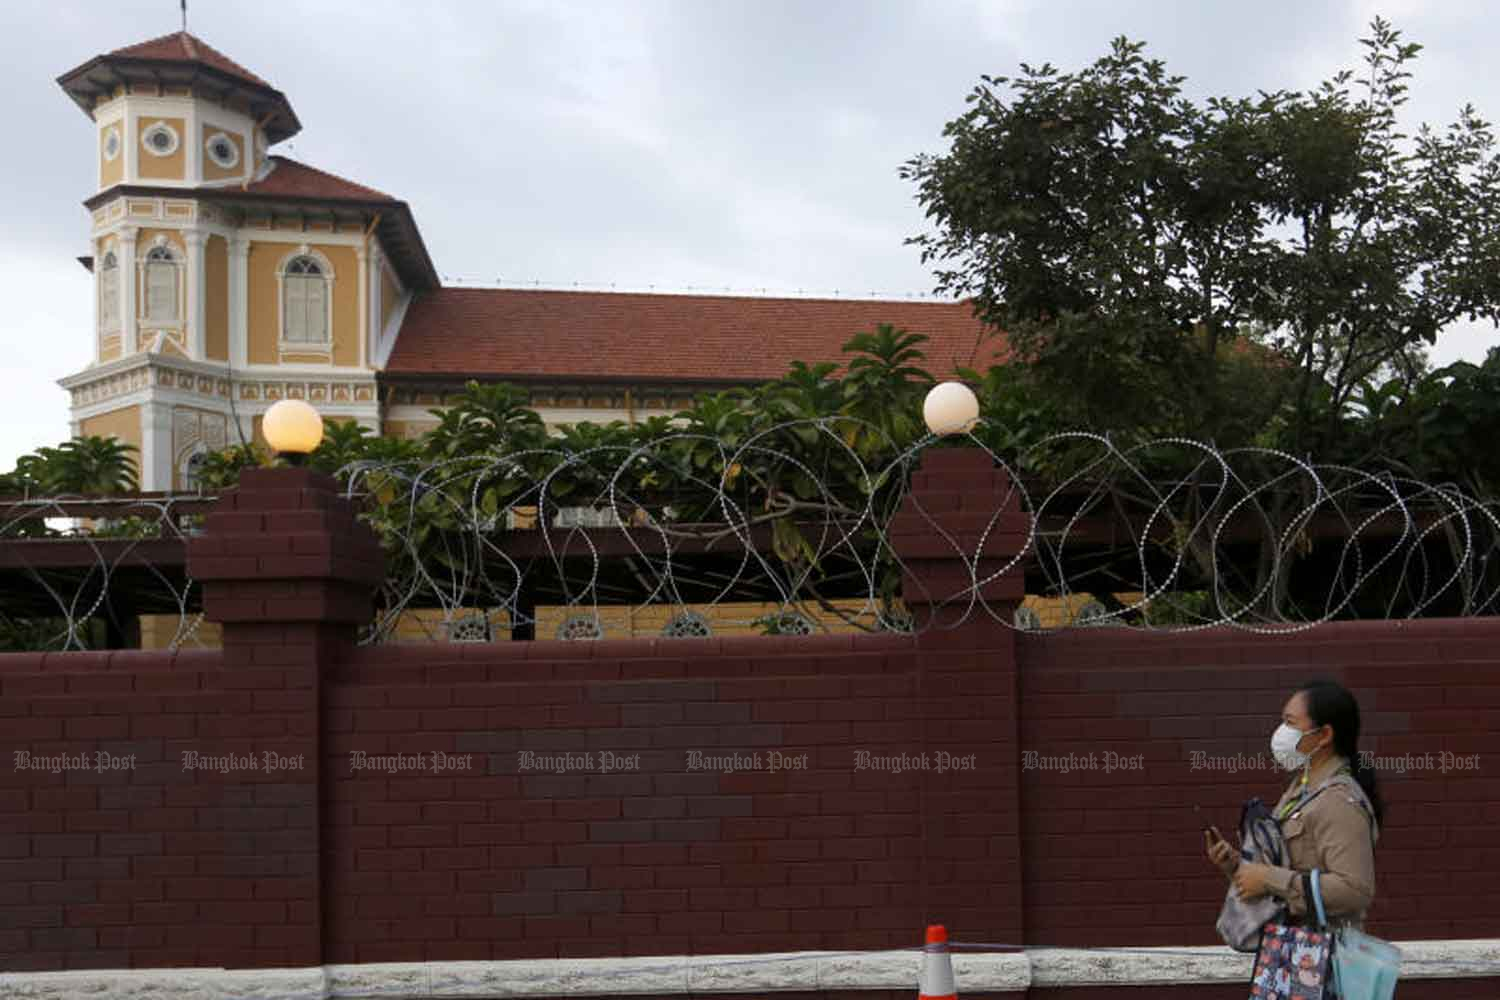 Razor wire is installed on the walls of the Crown Property Bureau on Phitsanulok Road as part of stepped-up security  ahead of a planned protest by pro-democracy demonstrators on Wednesday. (Photo by Arnun Chonmahatrakool)